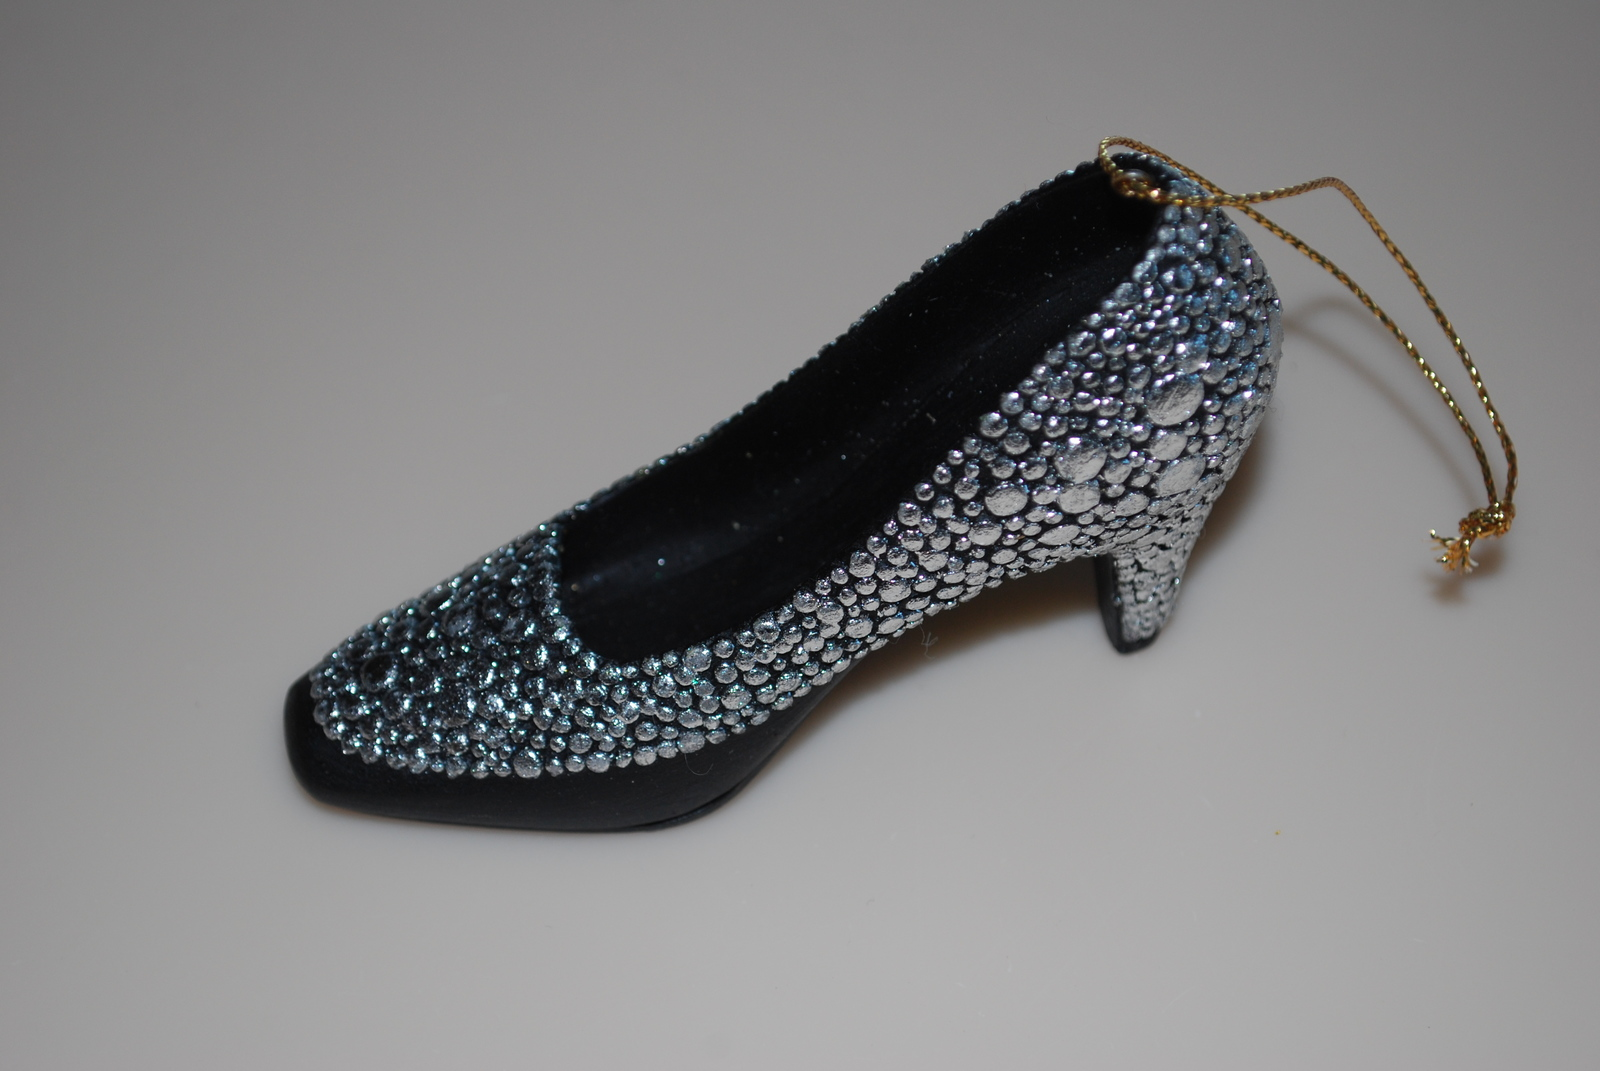 Metropolitan Museum of Art MMA Christmas Shoe Ornament 2011 Silver Heel